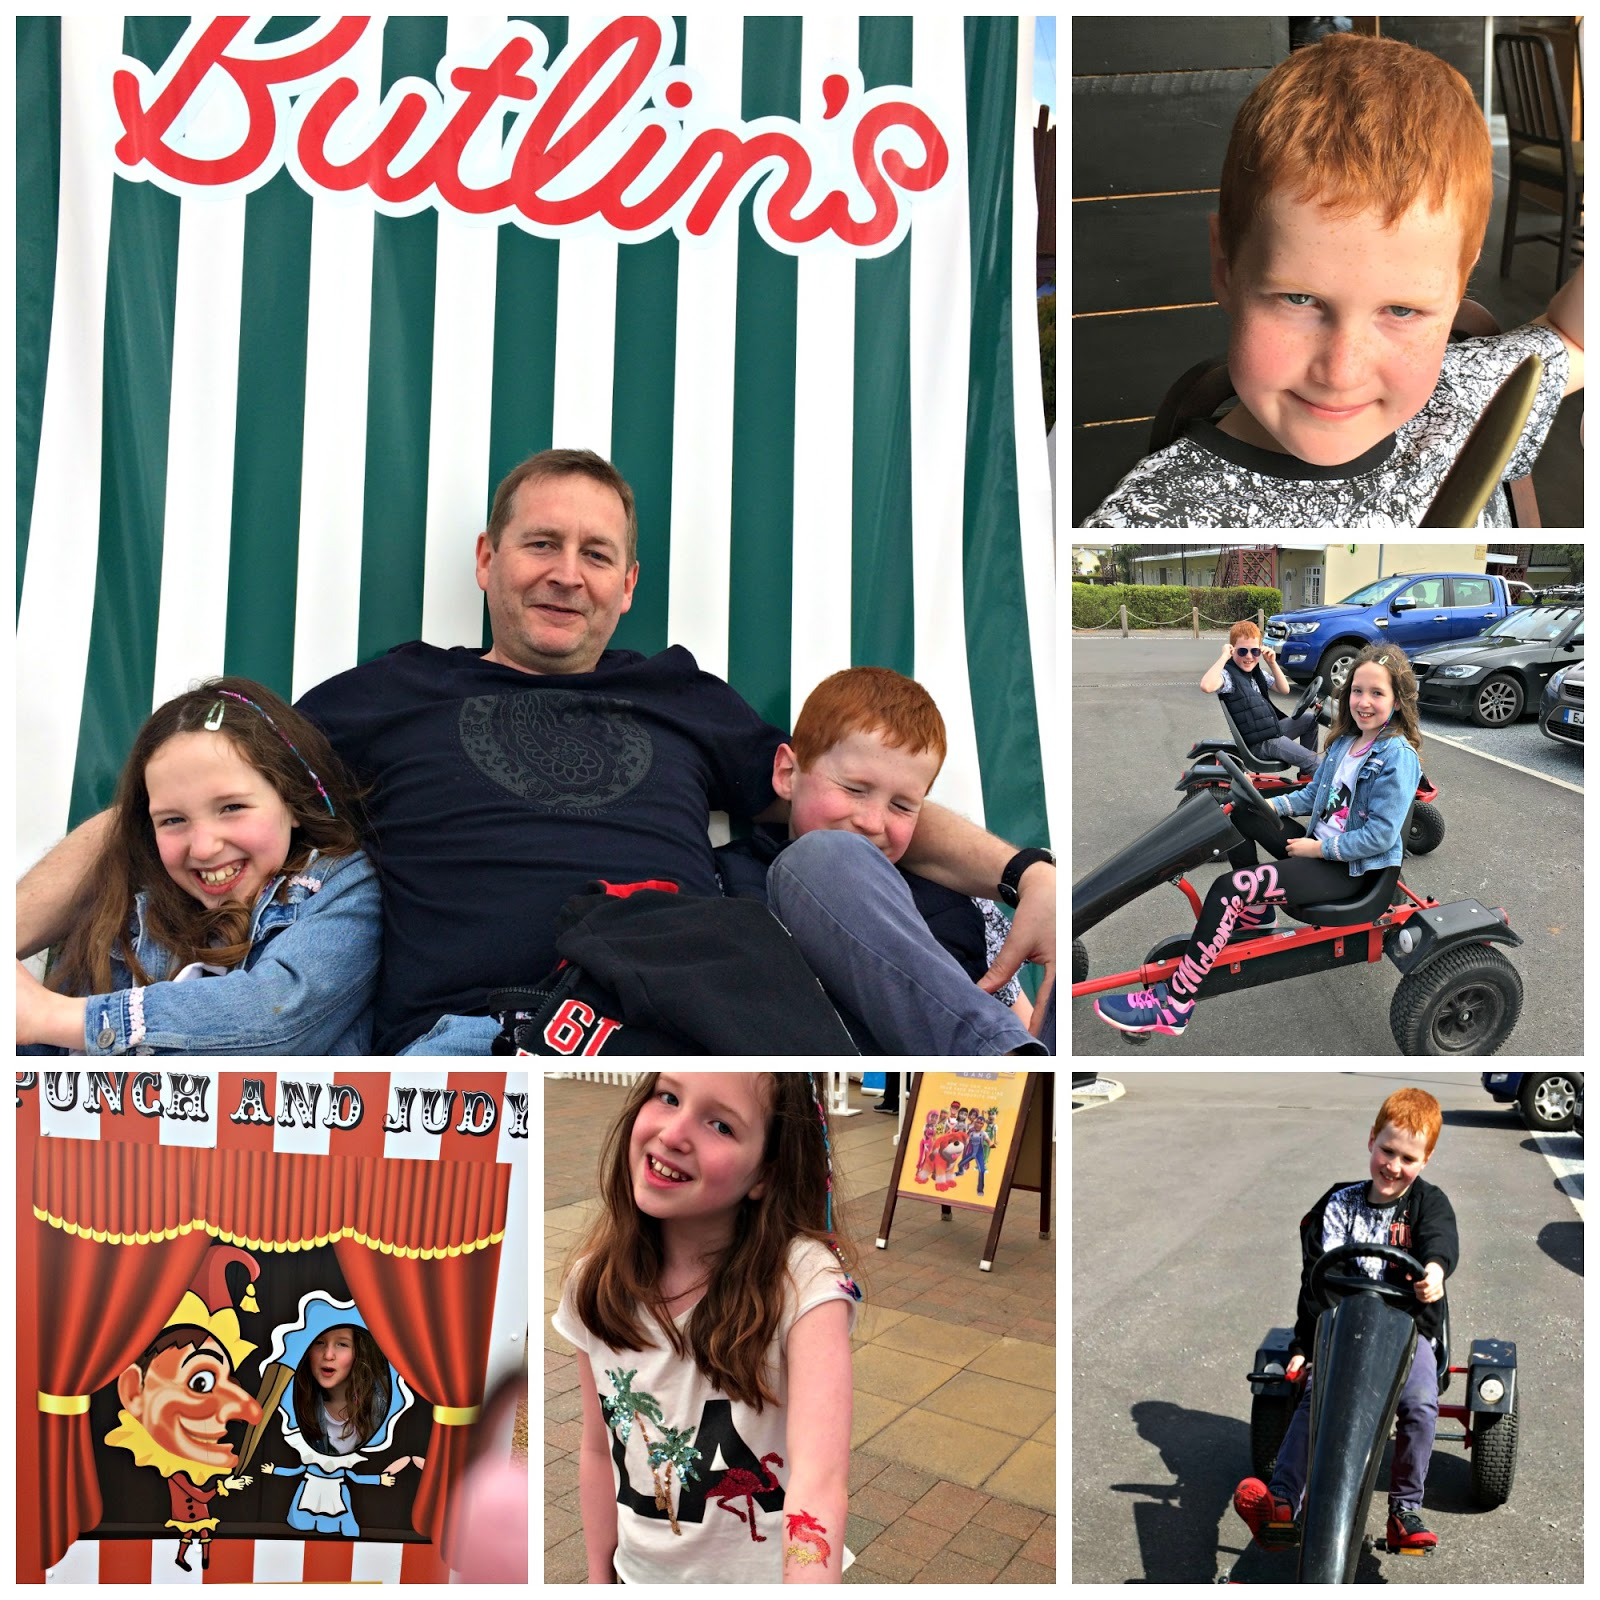 Caitlin, Ieuan and Mathew Hobbis at Butlins Minehead